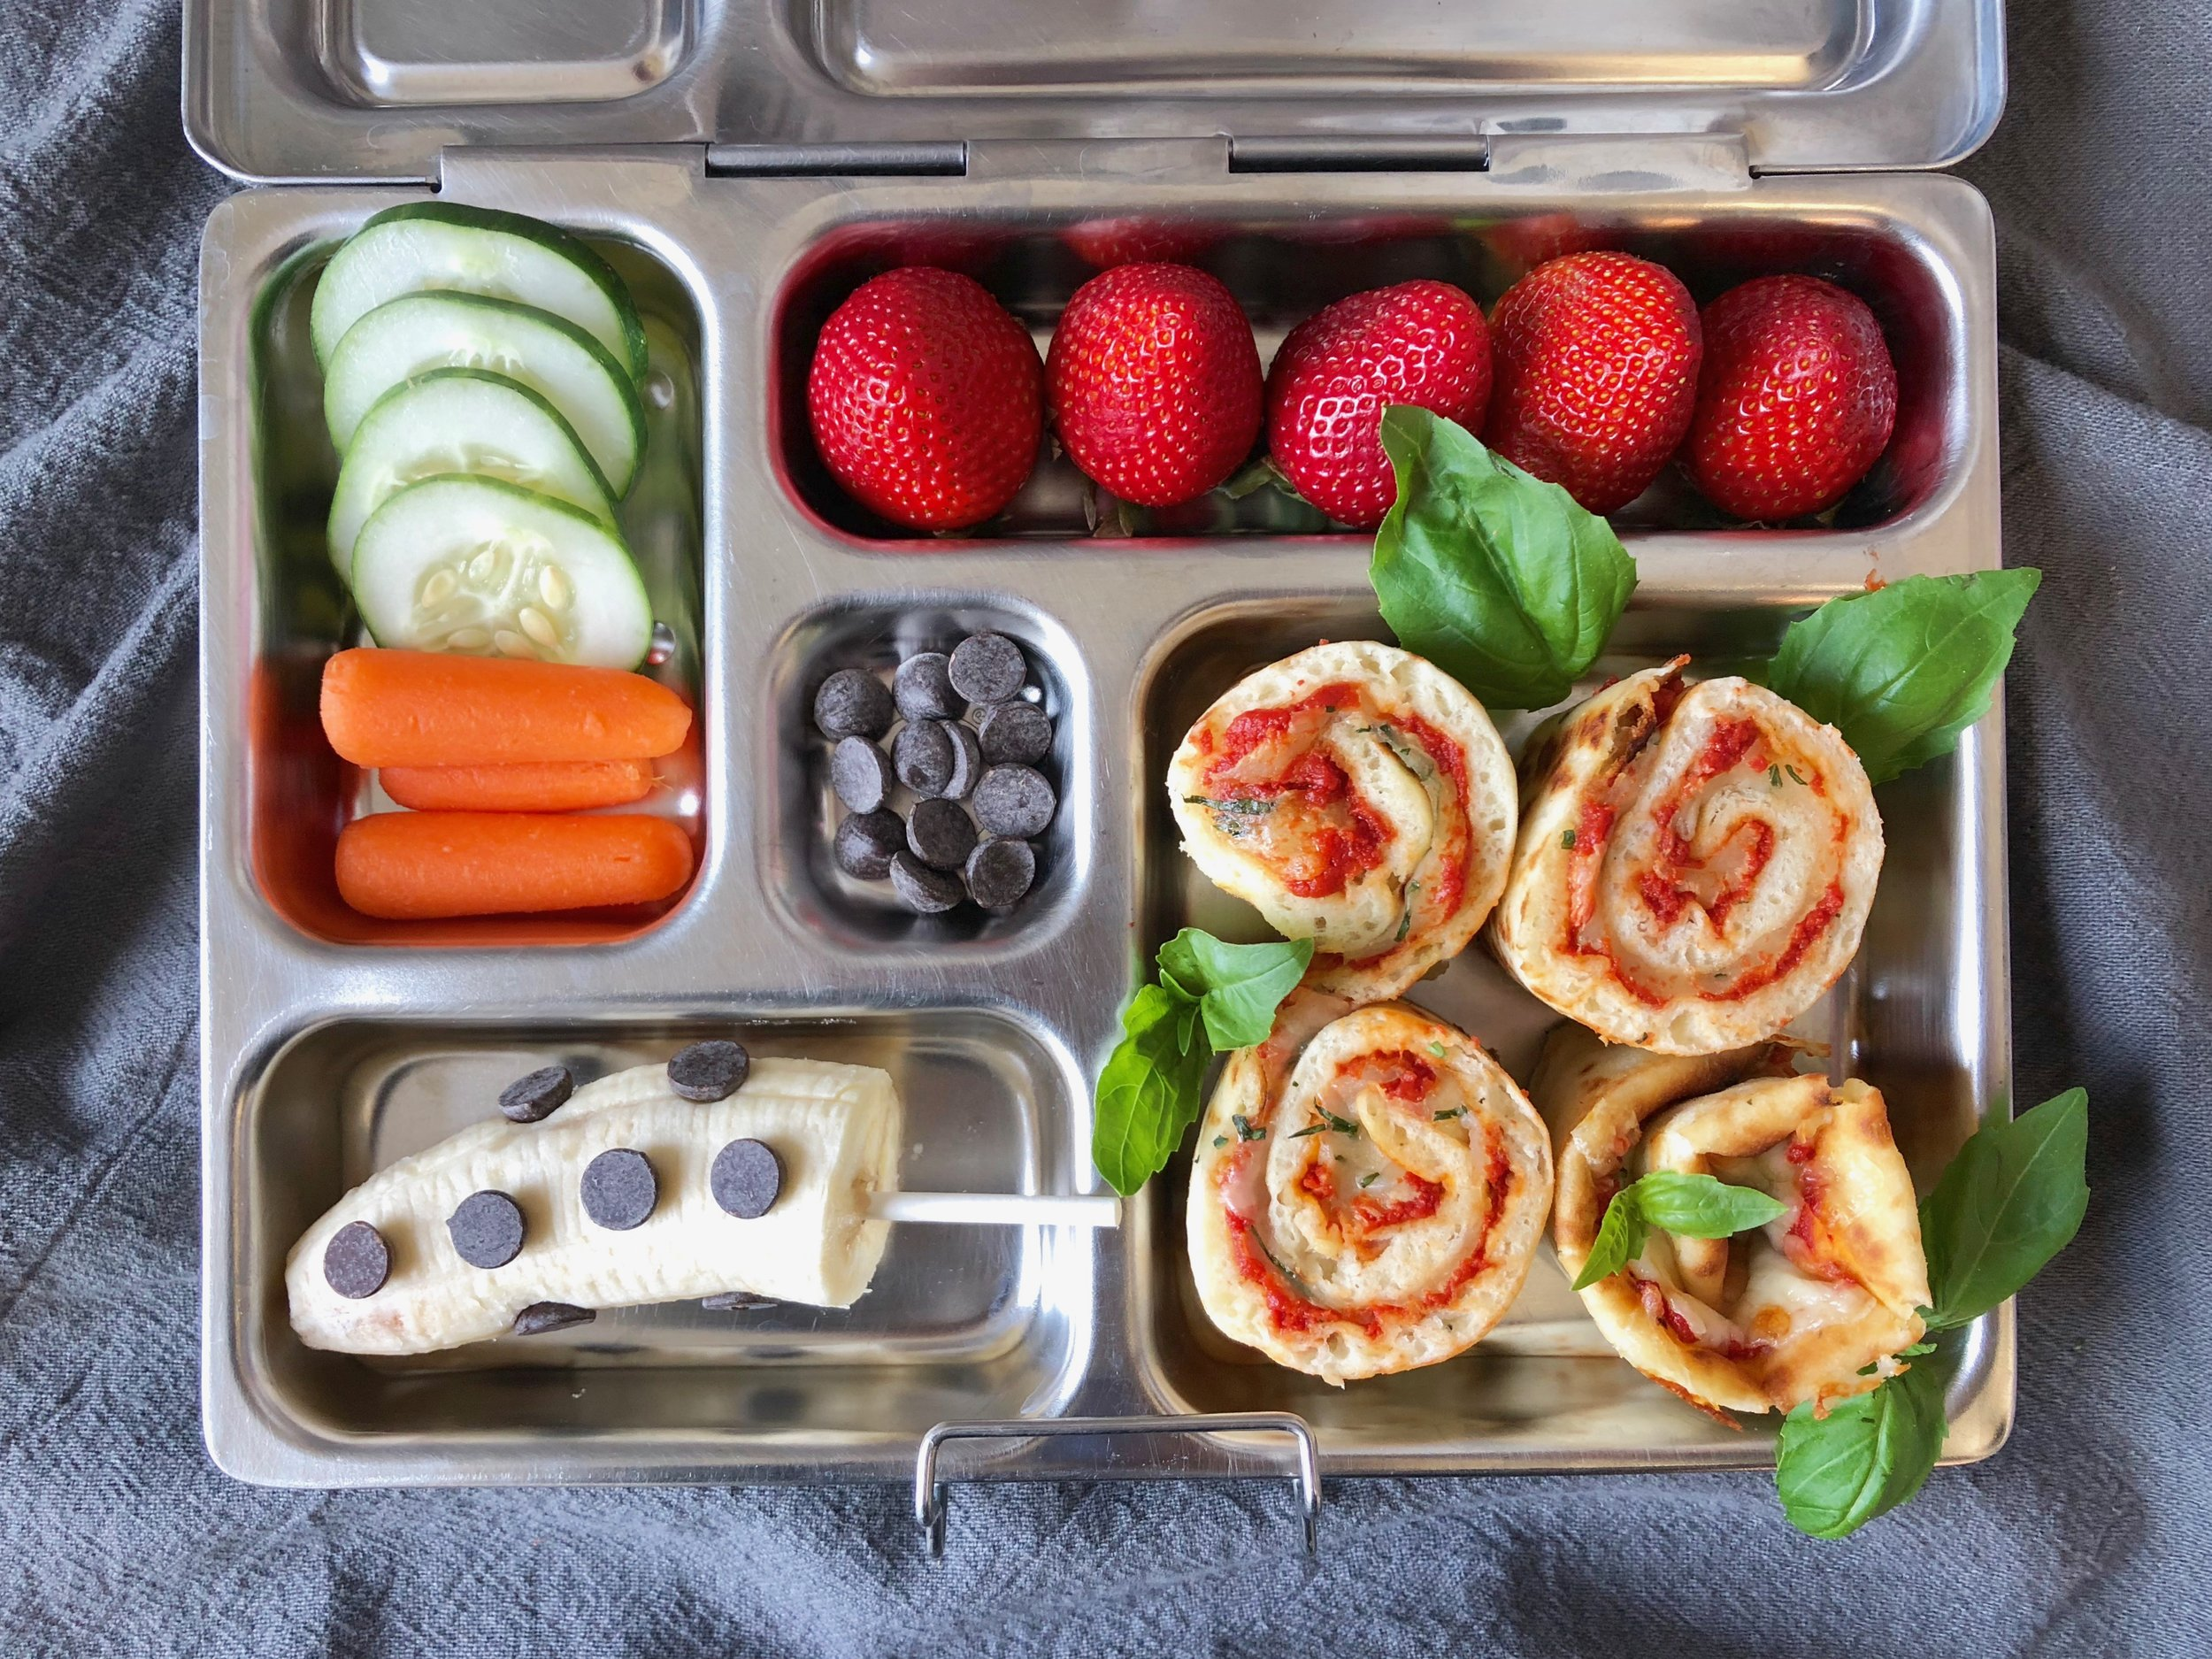 In the lunchbox: pizza rollups, banana with chocolate chips, cucumber and baby carrots, strawberries.